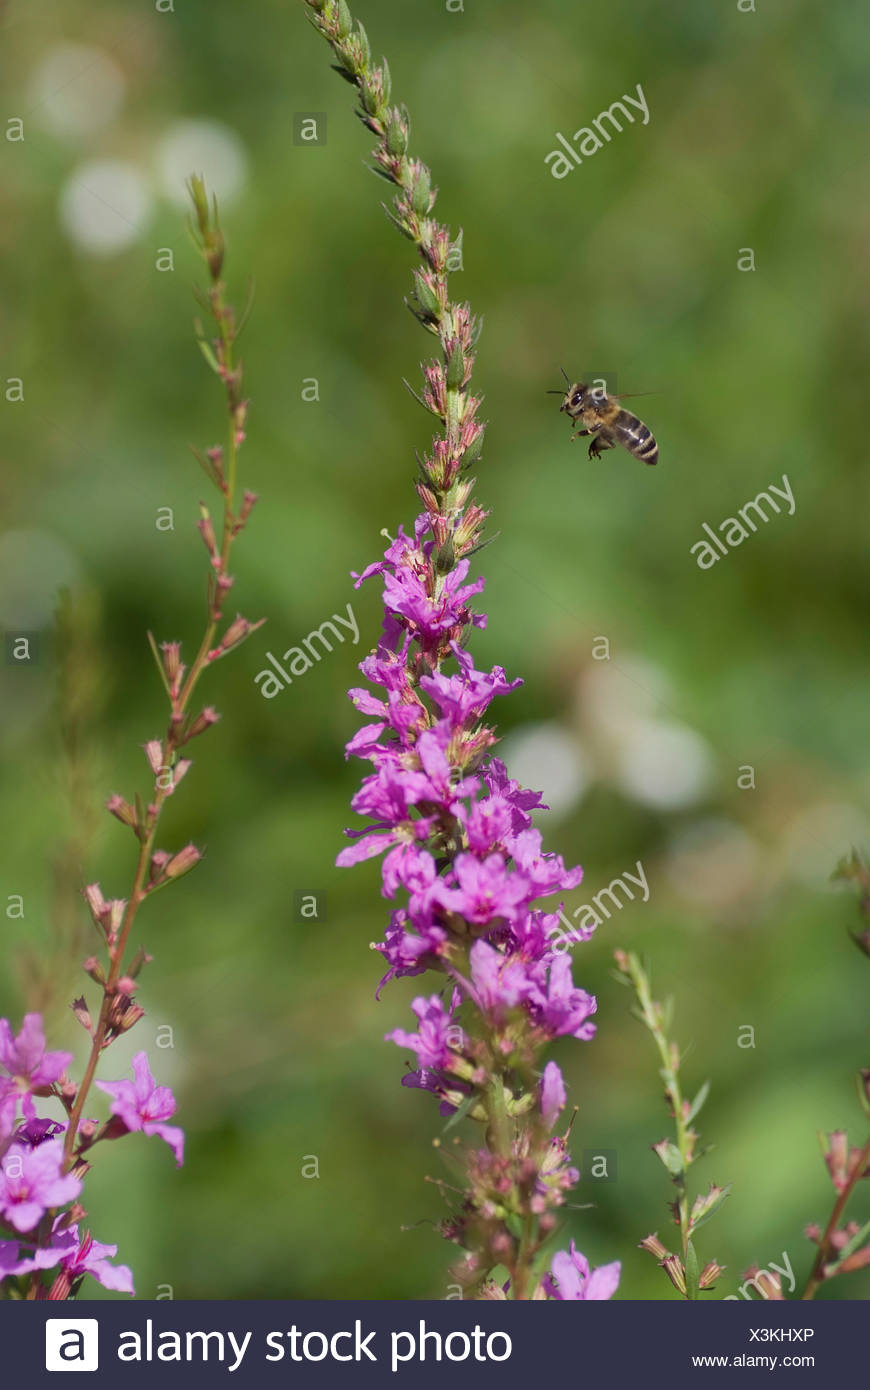 European Wand Loosestrife, Purple Loosestrife, Wand Loosestrife (Lythrum virgatum), bee approaching an inflorescence, Germany, BGFFM - Stock Image